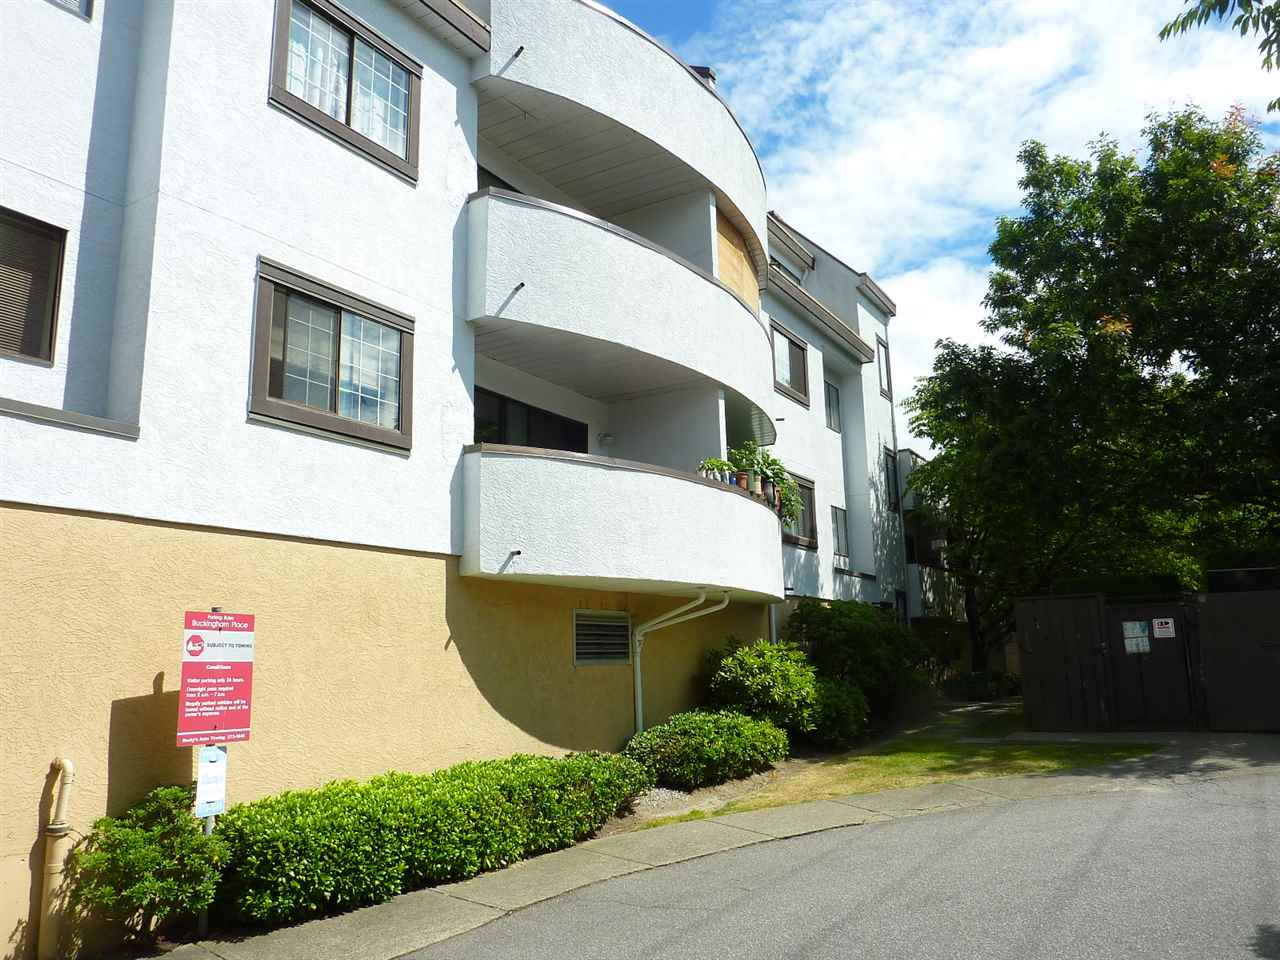 "Photo 2: 333 7480 ST. ALBANS Road in Richmond: Brighouse South Condo for sale in ""BUCKINGHAM PALACE"" : MLS® # R2199662"